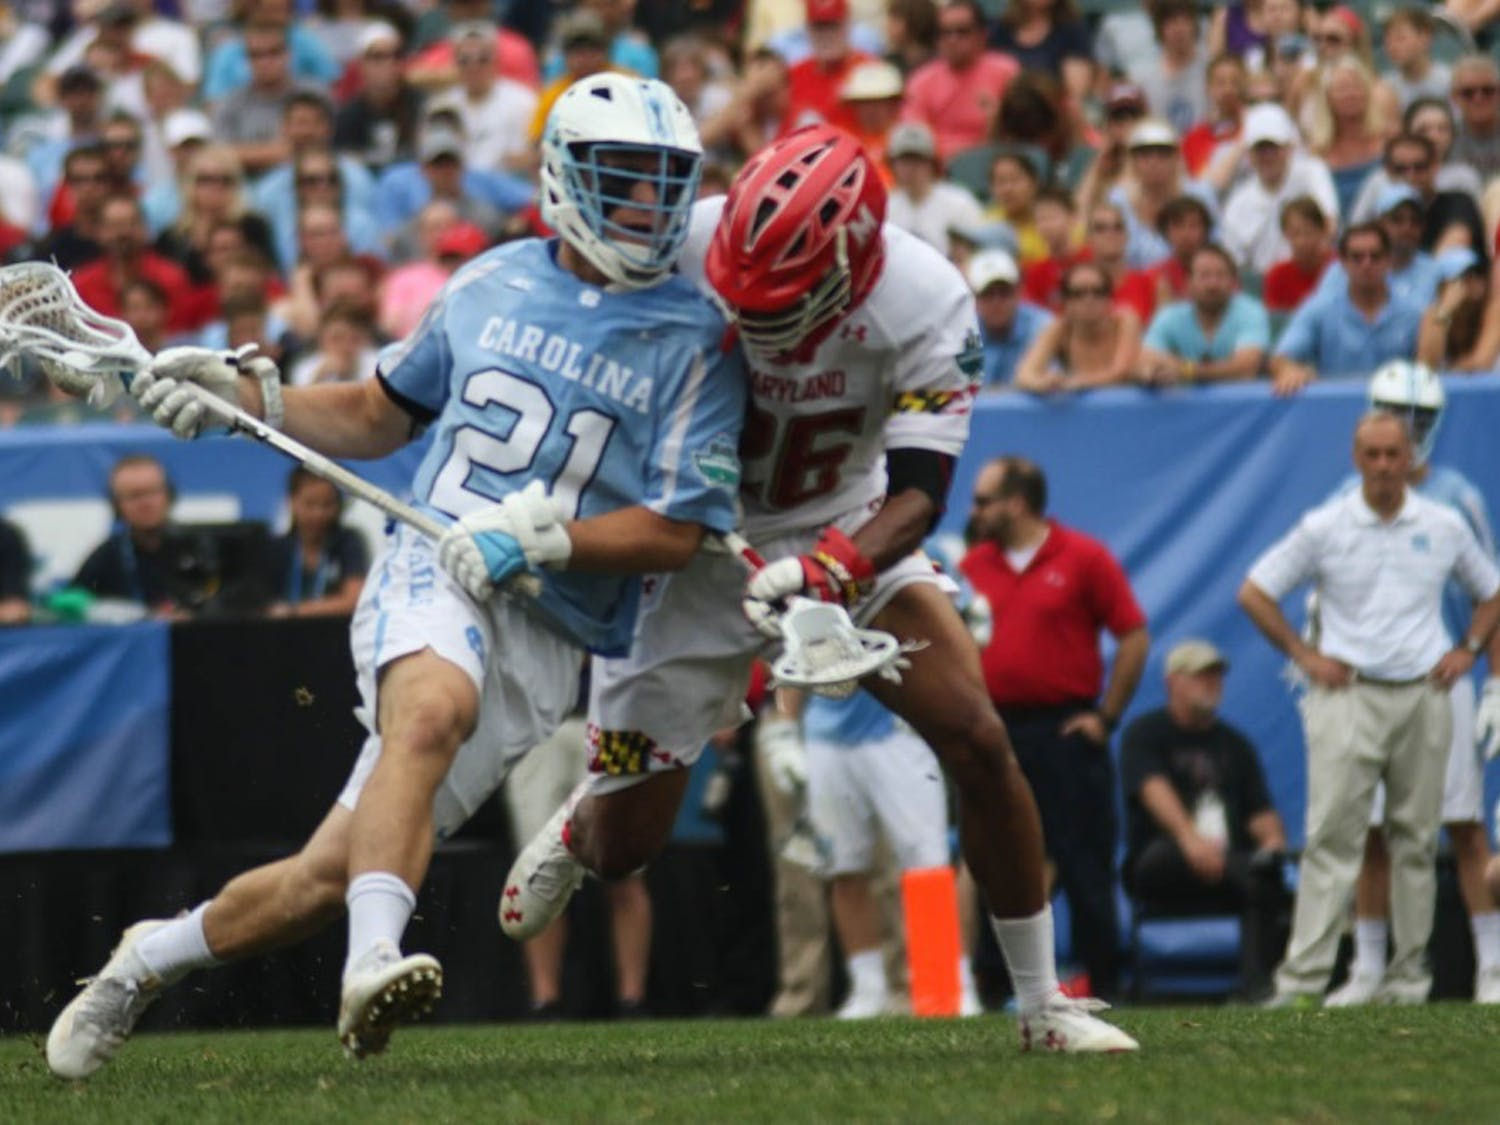 UNC midfielder Michael Tagliaferri (21) fights off a Maryland defender. The unseeded North Carolina men's lacrosse team defeated No. 1 Maryland 14-13 in overtime to claim the program's first national championship since 1993 in Mayat Lincoln Financial Field in Philadelphia. North Carolina faces Maryland this Saturday at 11:30.